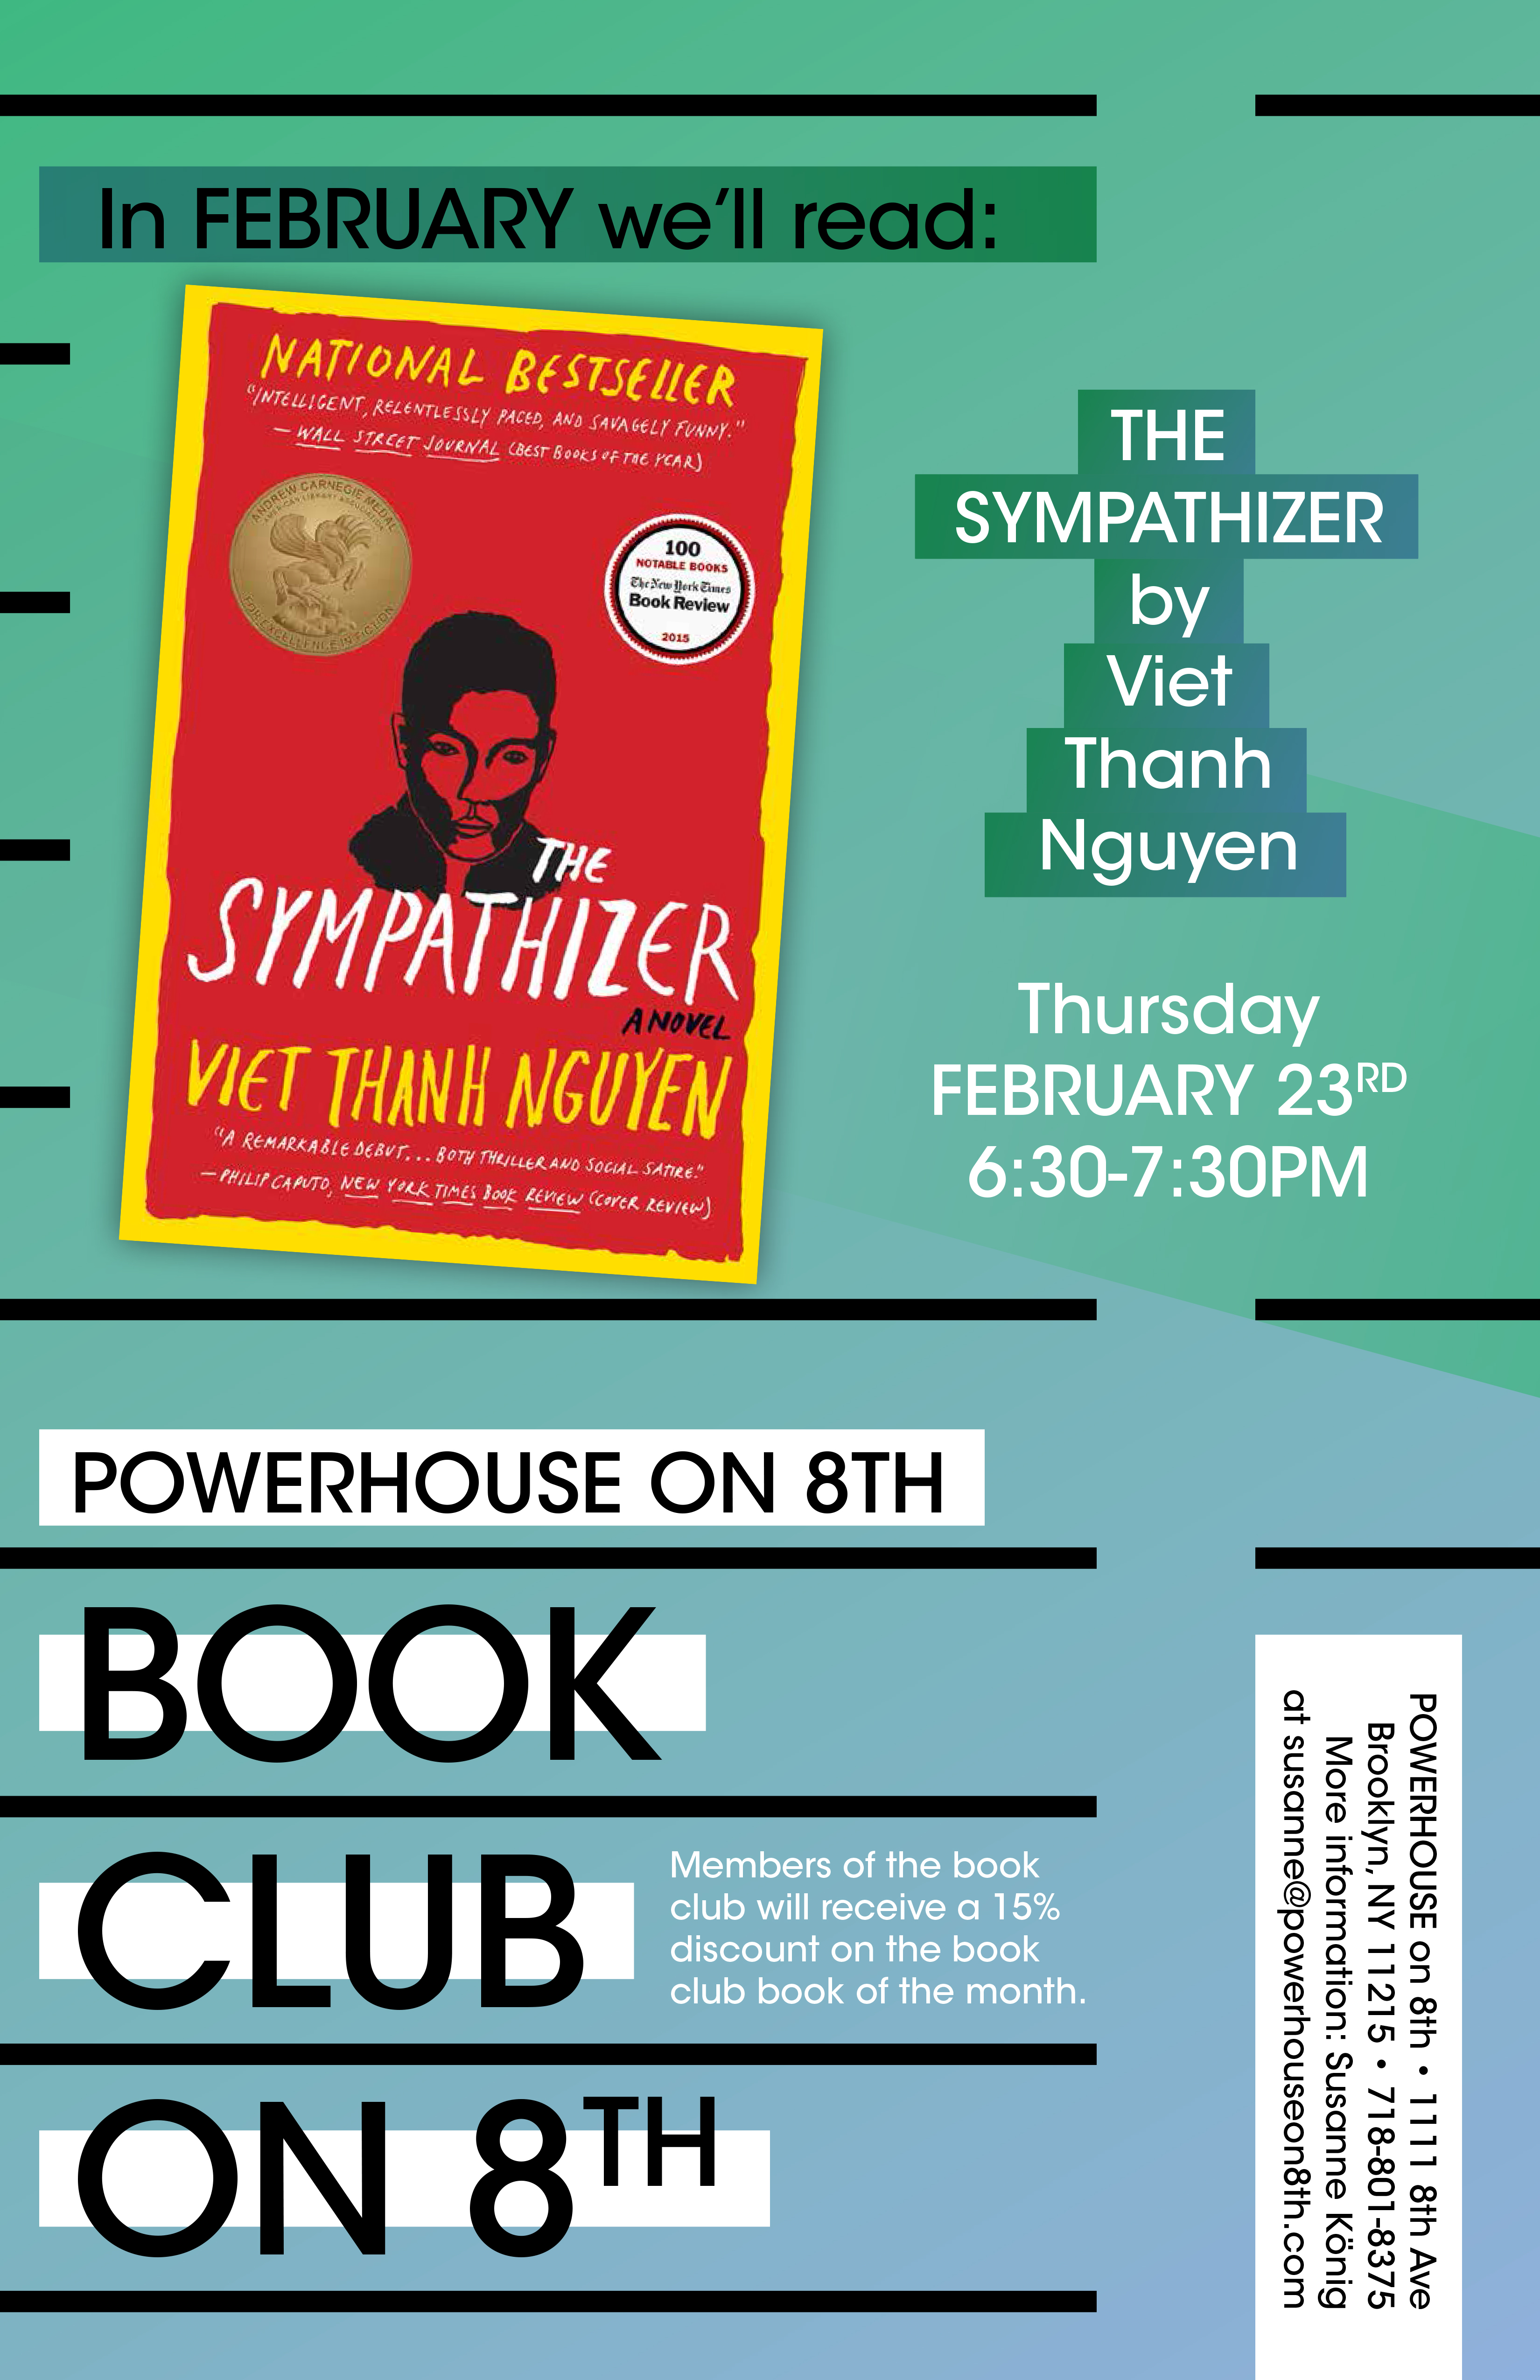 Book Club on 8th: The Sympathizer: A Novel by Viet Thanh Nguyen